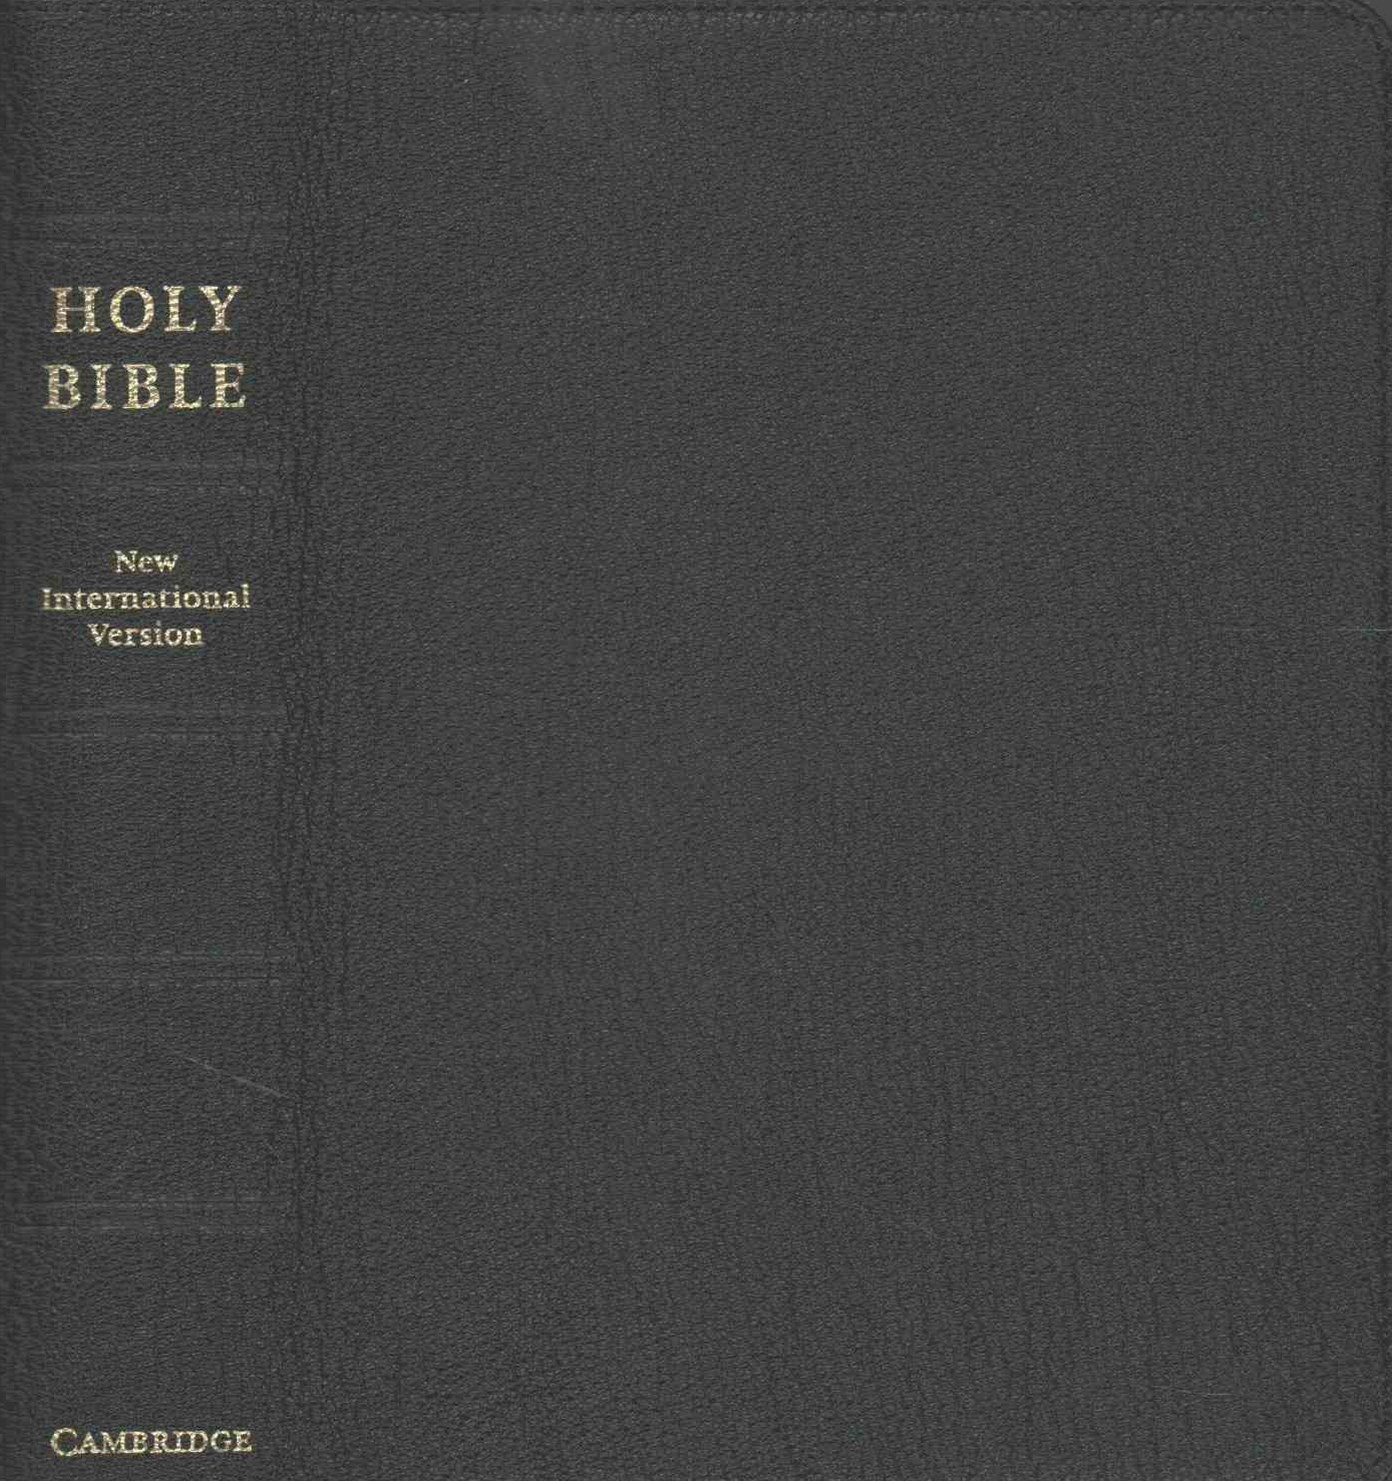 NIV Clarion Reference Bible, Black Edge-lined Goatskin Leather, NI486:XE